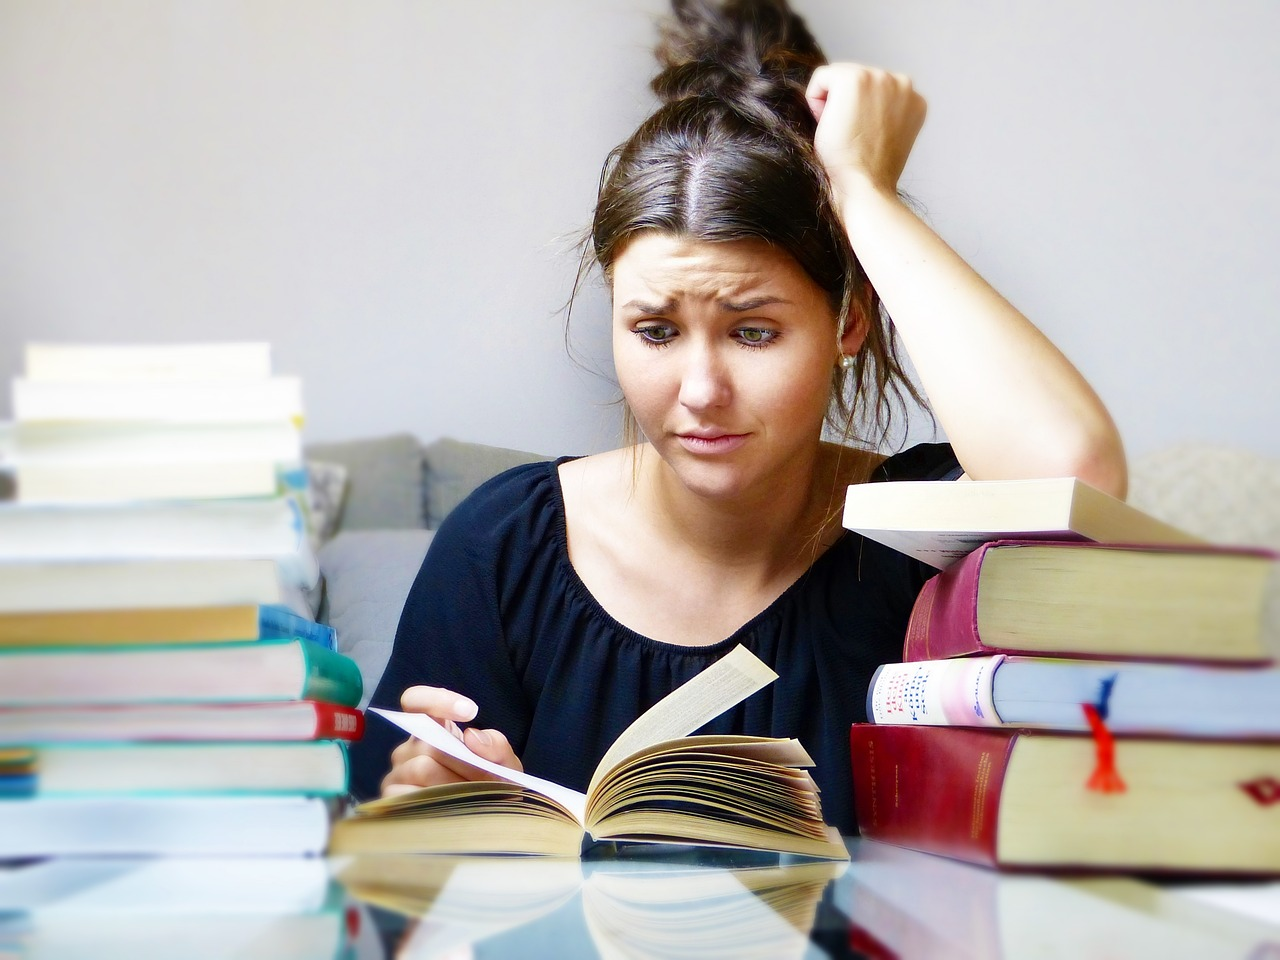 A girl reading a lot of books, looking stressed.